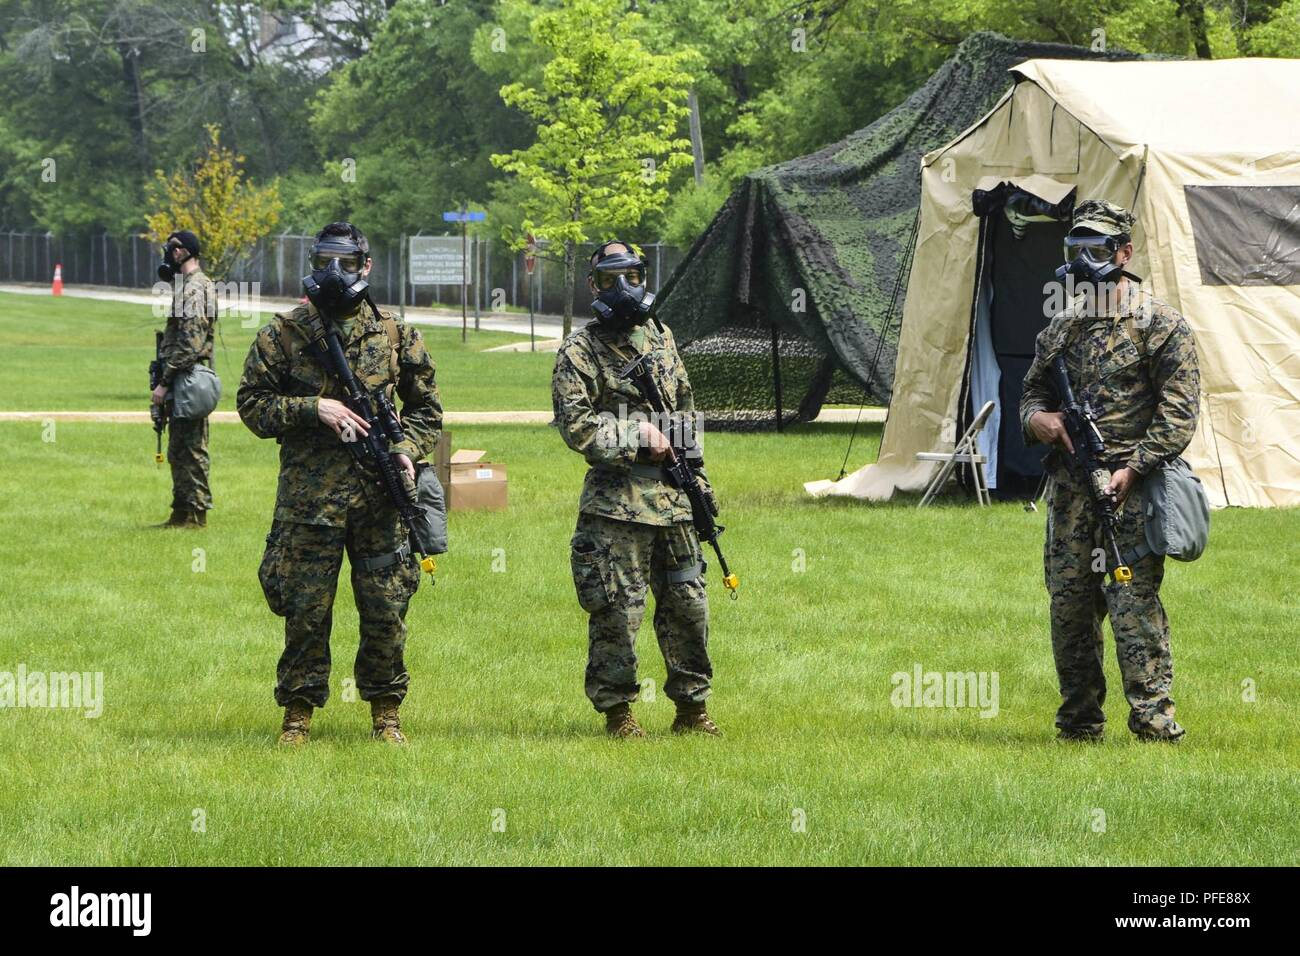 https www alamy com great lakes ill june 9 2018 a group of marines attached to 3d civil affairs group cag stand watch with gas masks on during a training exercise on naval station great lakes each of the 3d cags four operational detachments encountered local civilians who they would encounter in a combat situation who were played by role players a mix of sailors and contractors image216058106 html